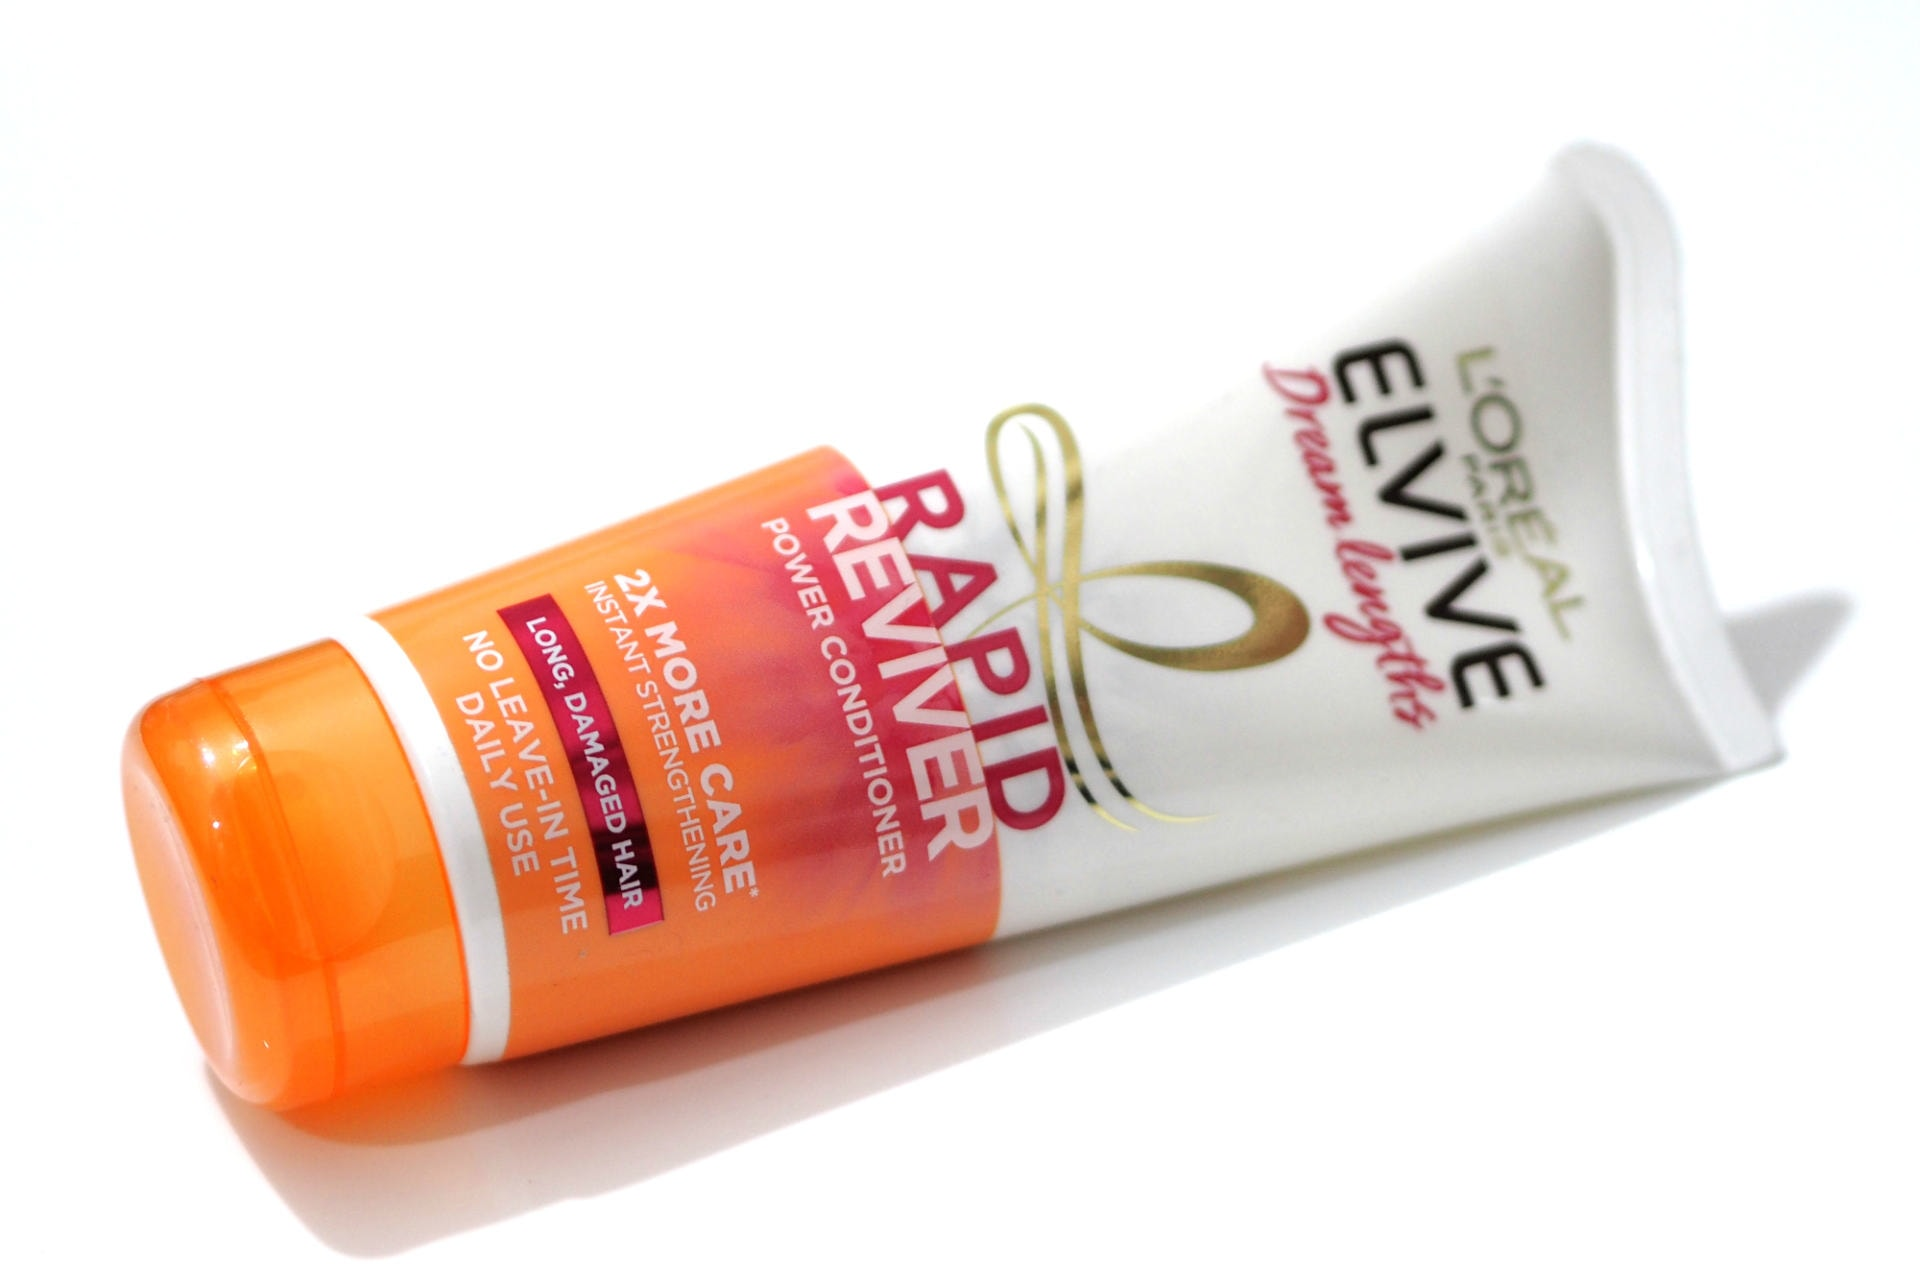 L'Oreal Elvive Dream Lengths Rapid Reviver Power Conditioner